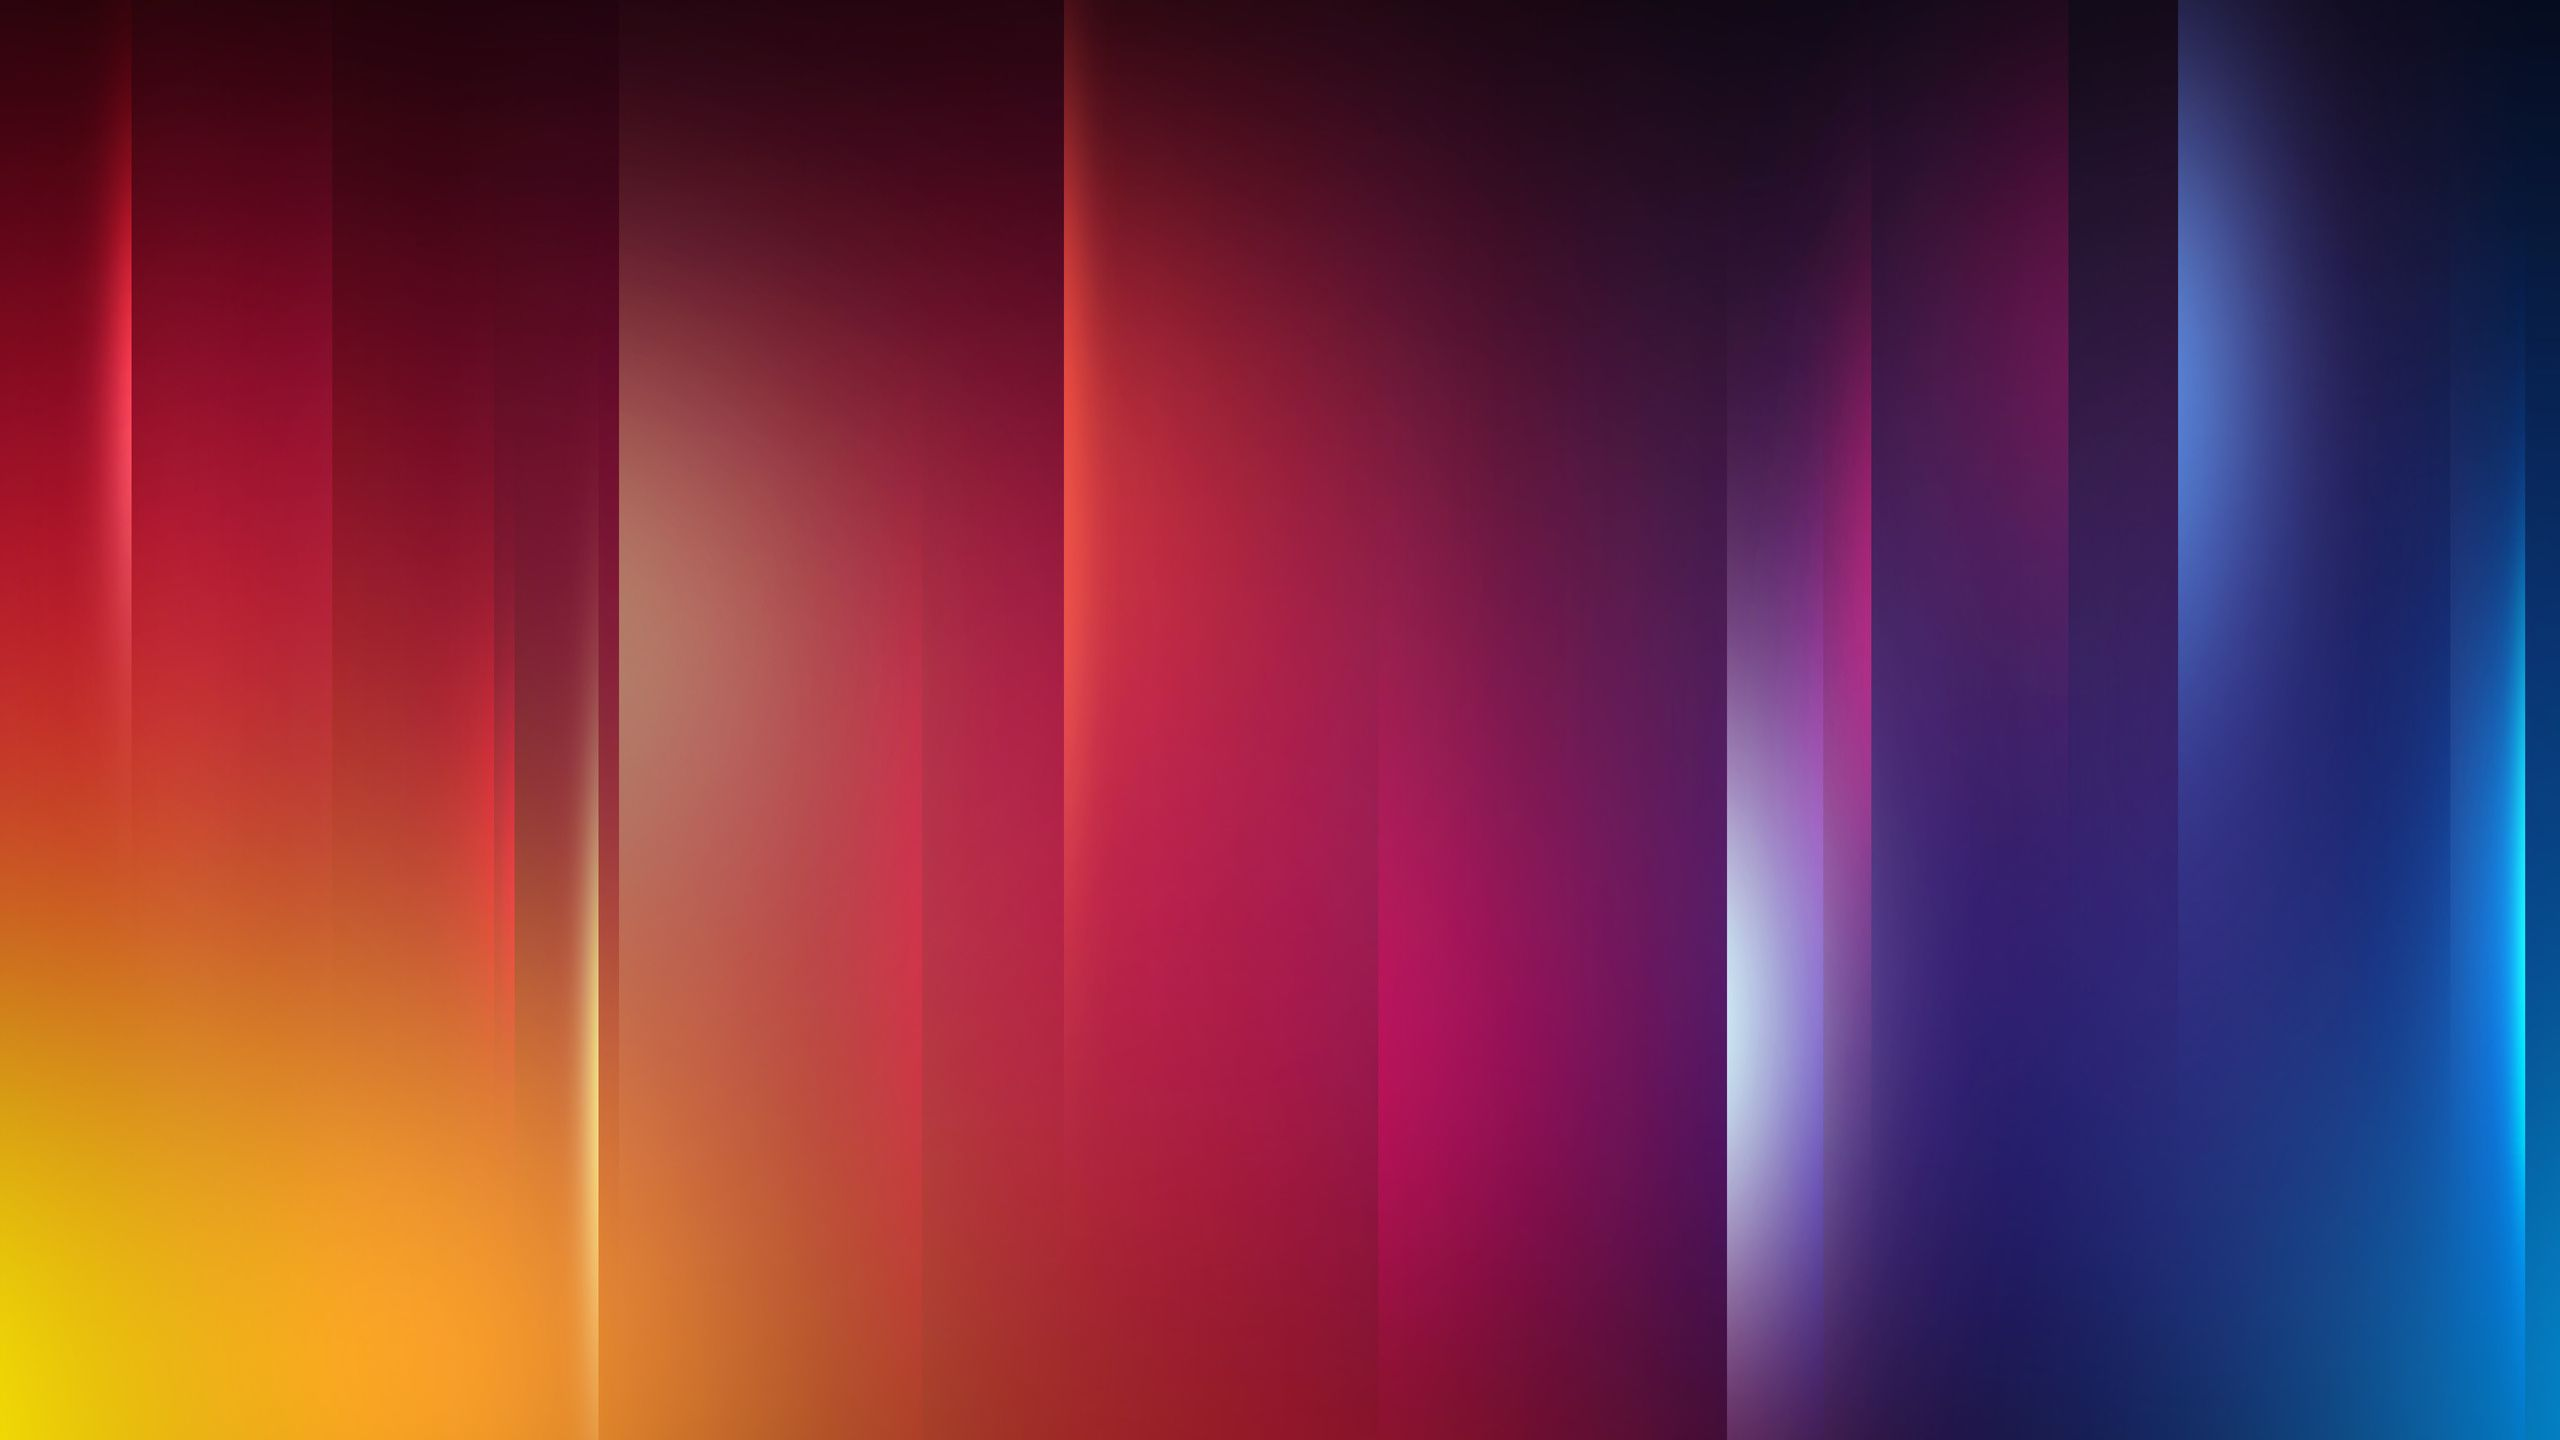 2560x1440 Colorful Wallpapers On Wallpaperdog